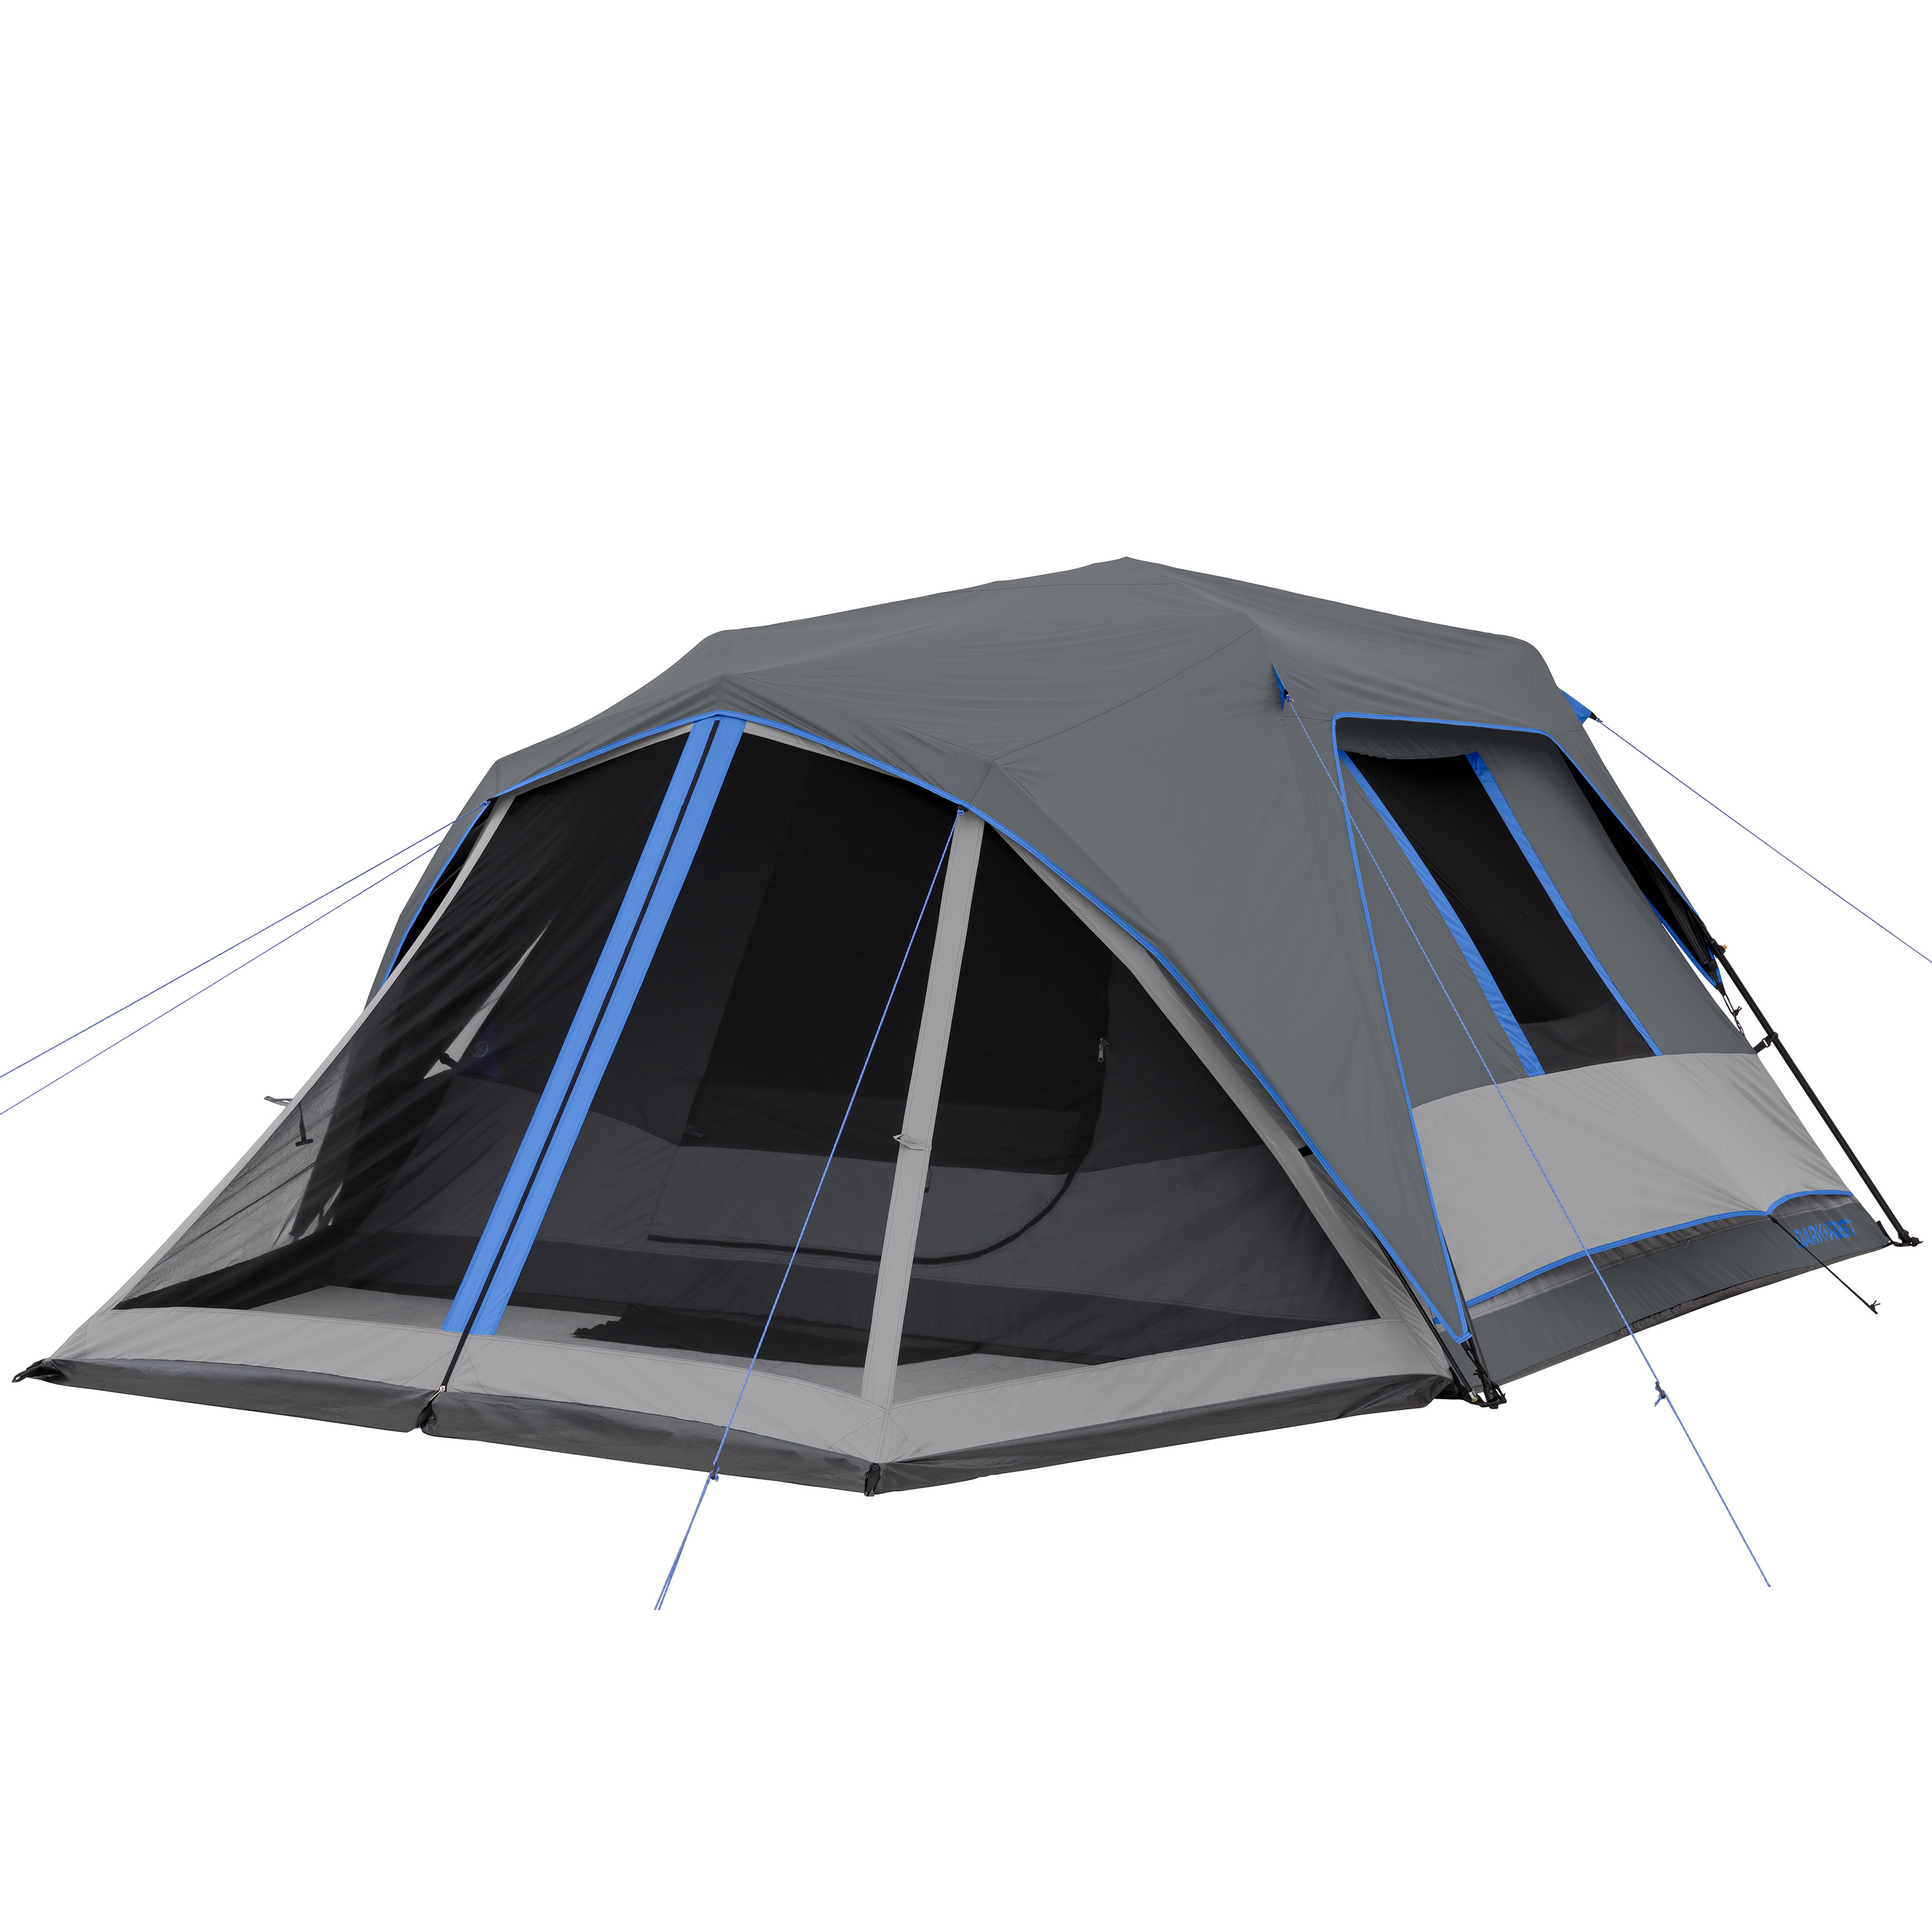 Ozark Trail 6-Person Instant Darkrest Cabin Tent with light